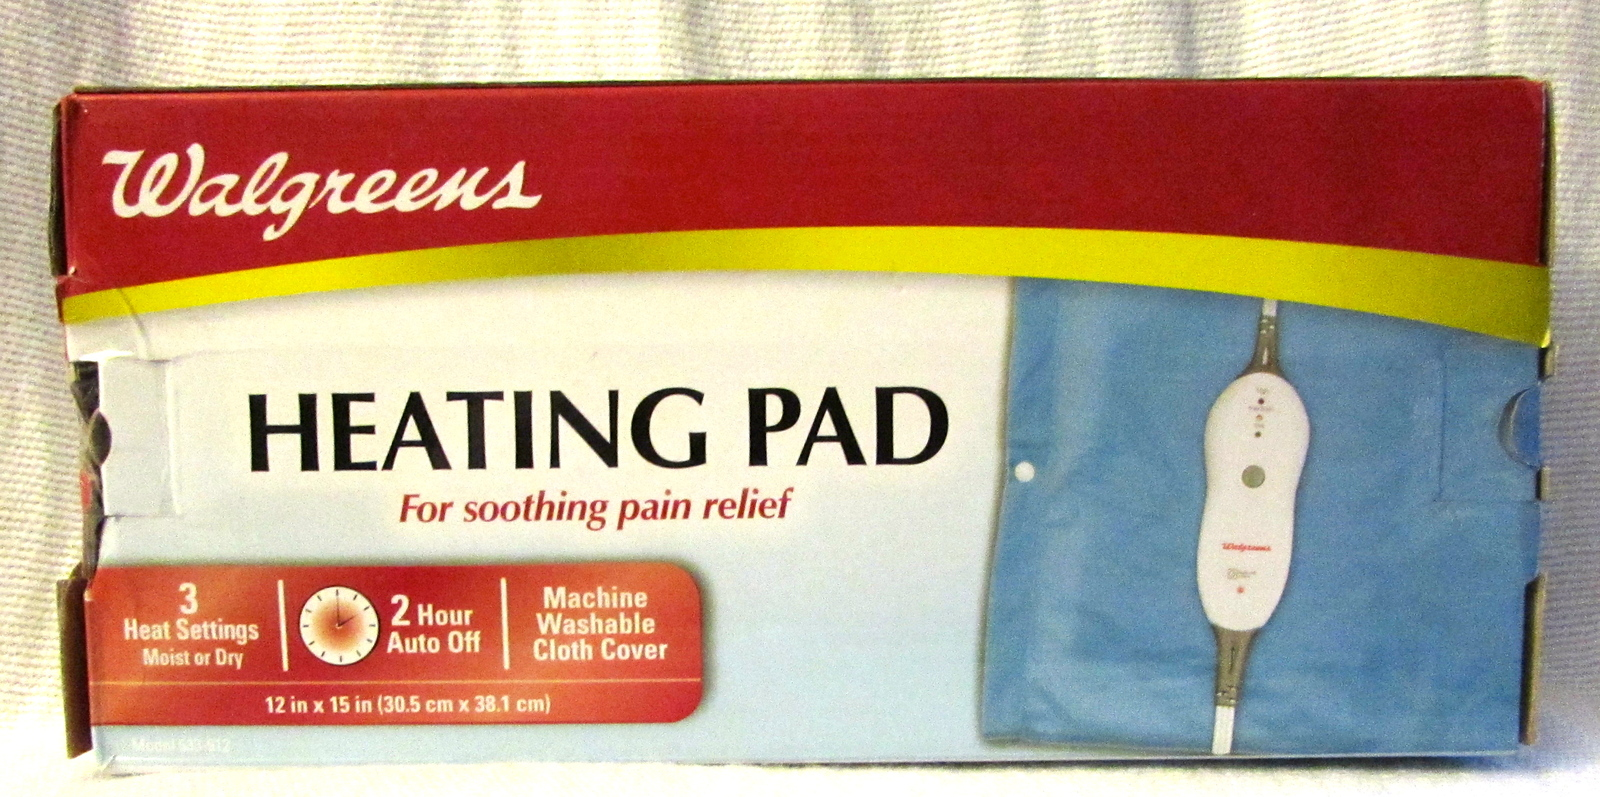 Moist or Dry Heating Pad by Walgreens 12 x 15